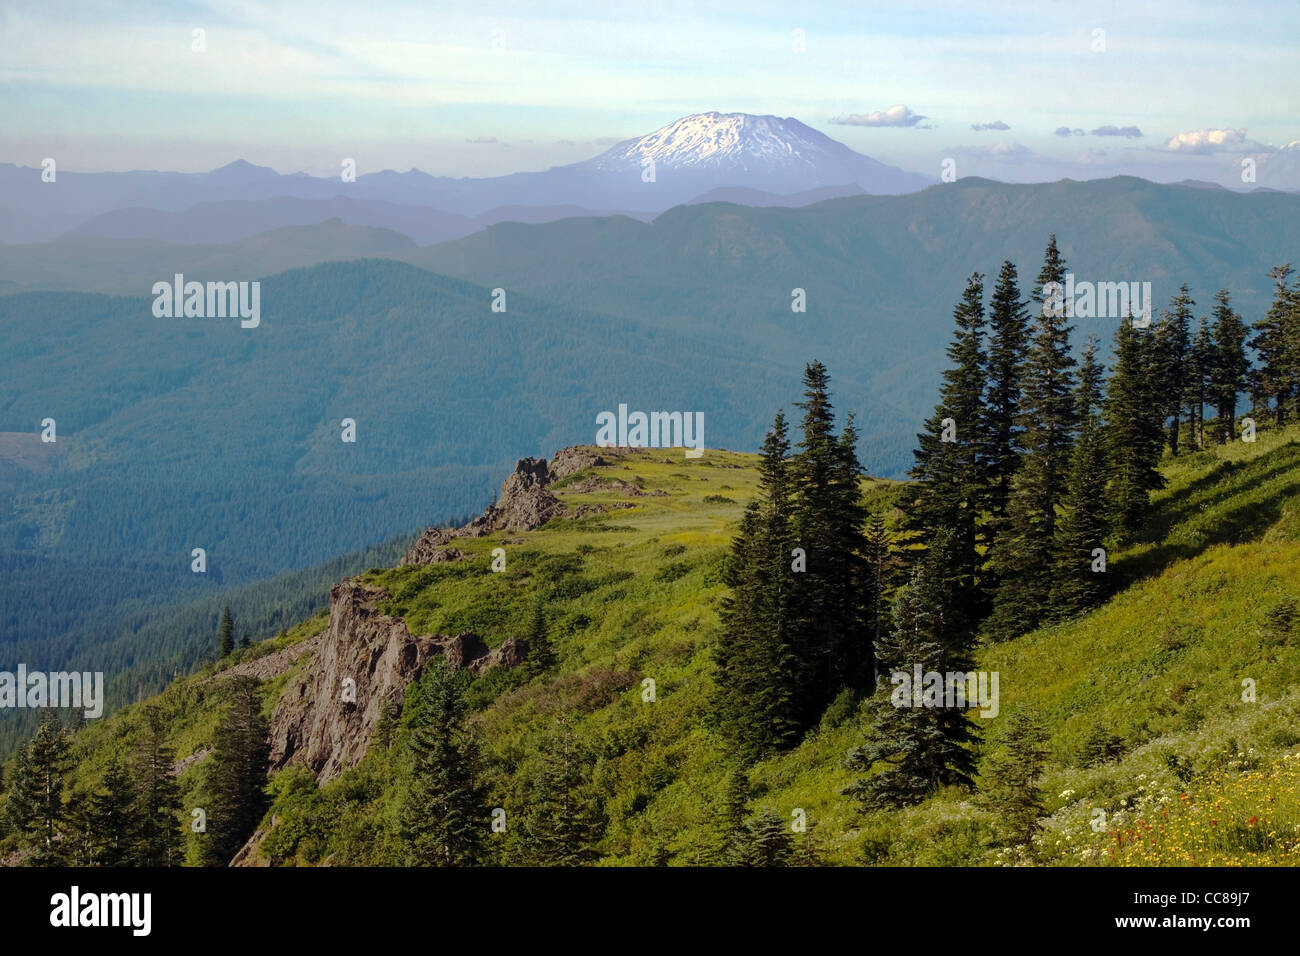 View of Washinton's Mt St Helens Volcano - Stock Image